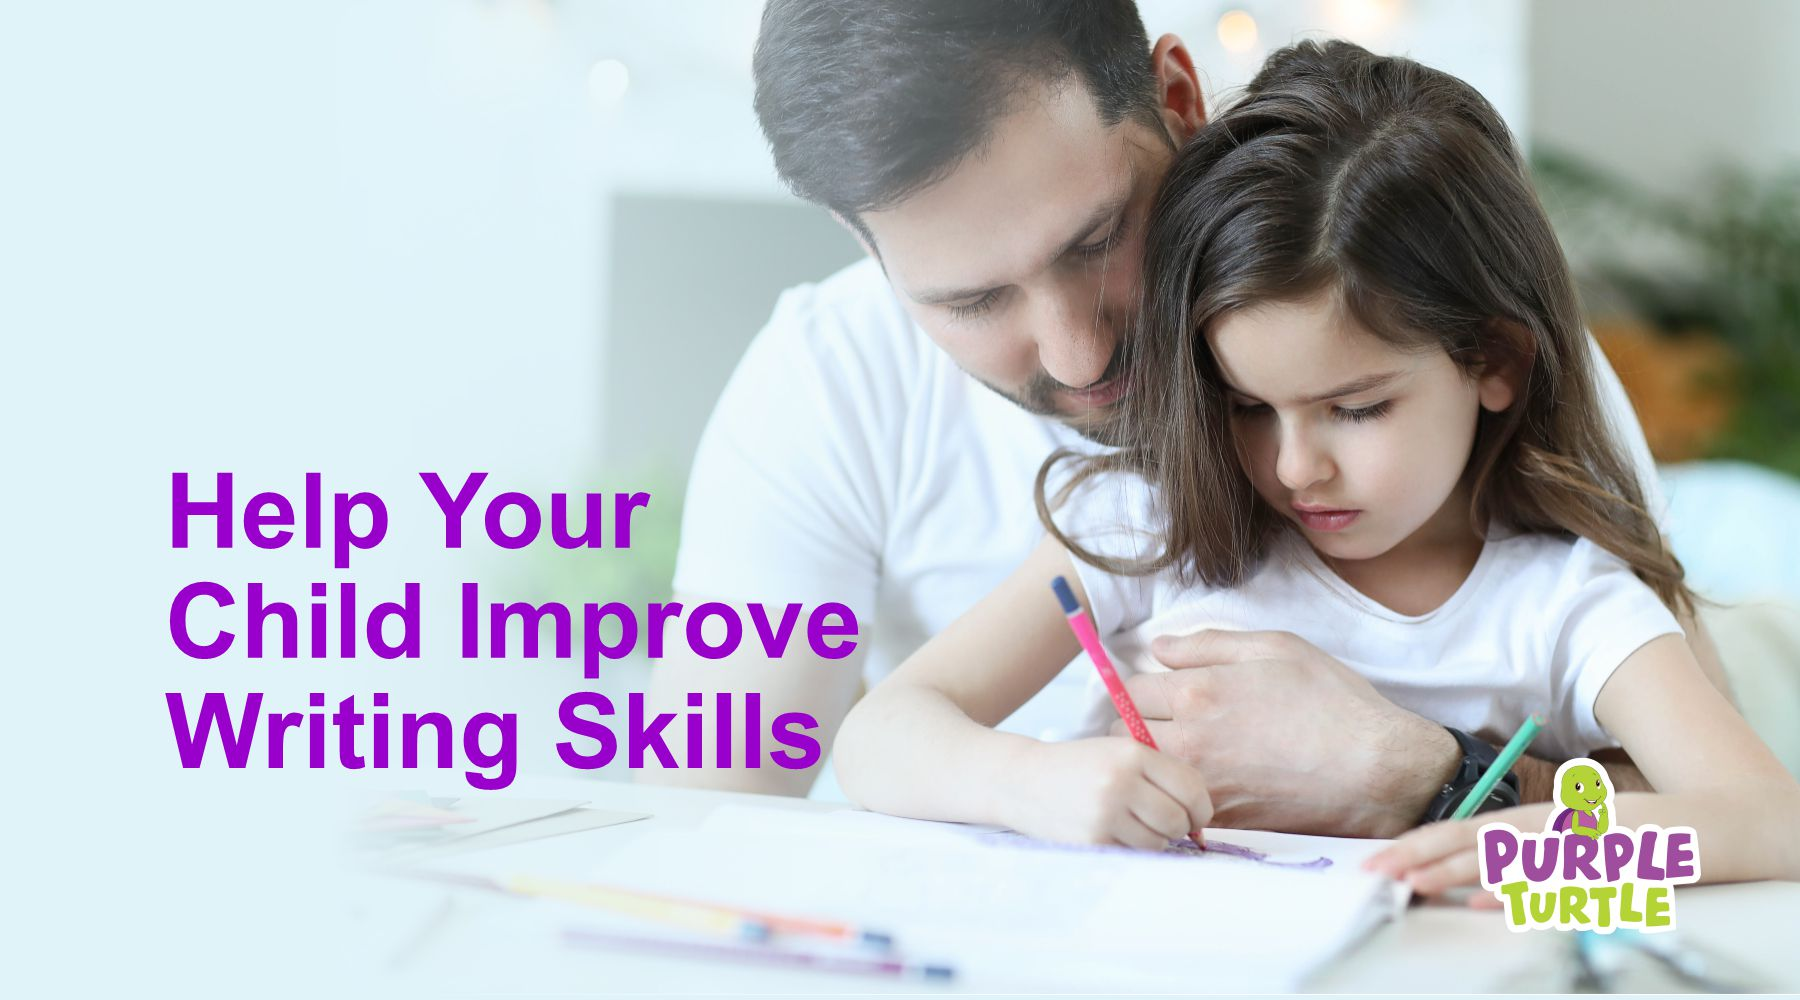 Help Your Child Improve Writing Skills